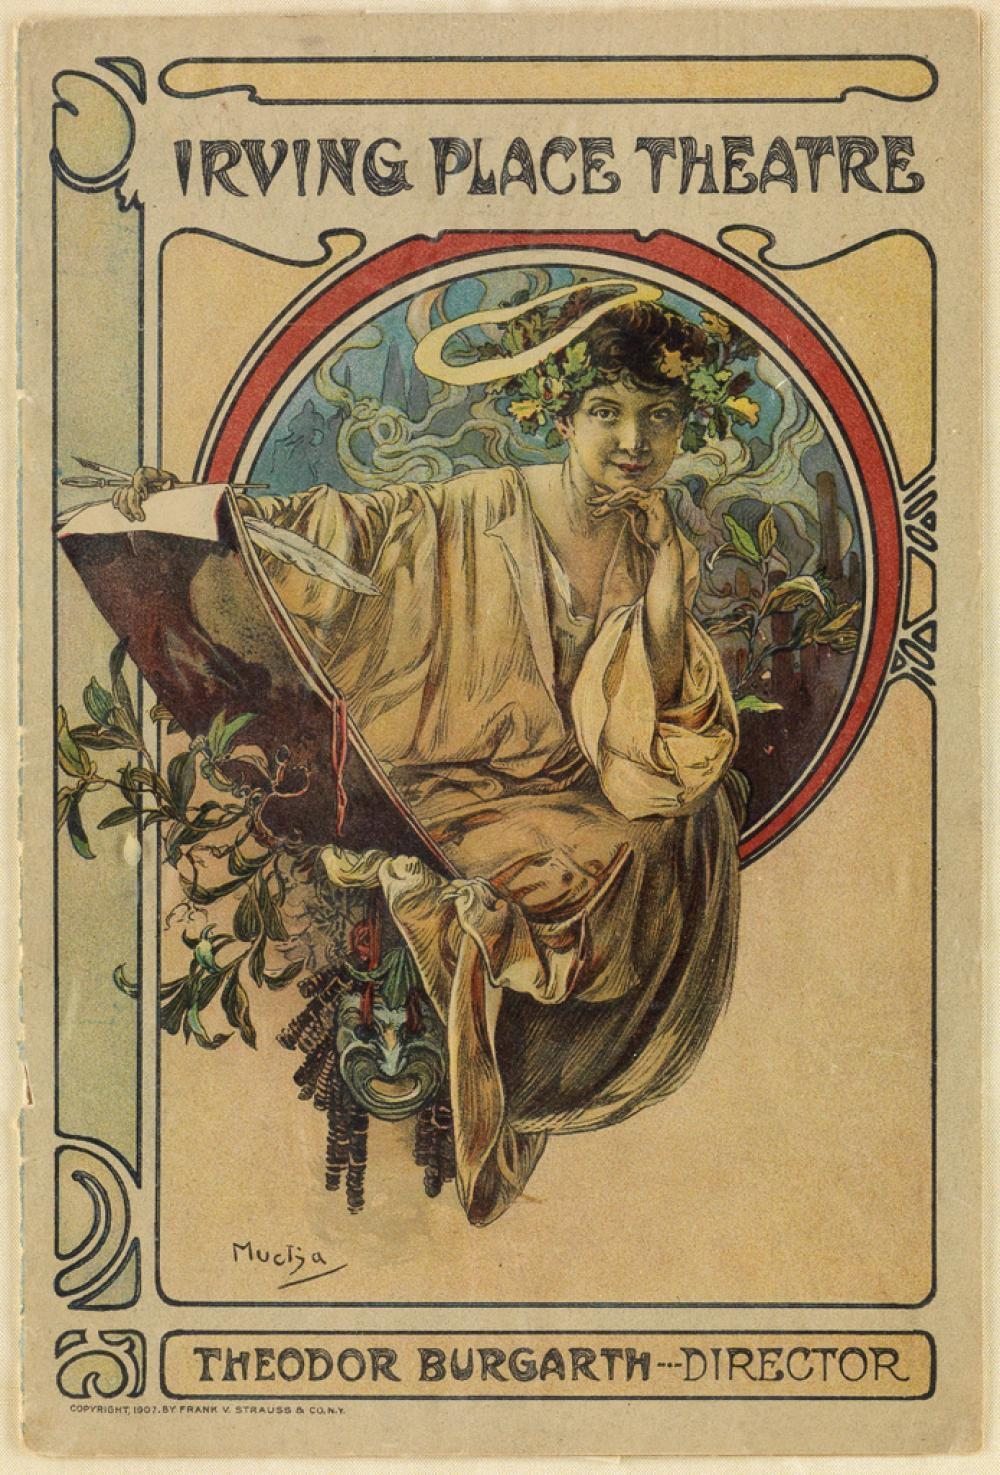 ALPHONSE MUCHA (1860-1939). IRVING PLACE THEATRE. Complete program. October 31st, 1910. 9x6 inches, 23x15 cm. Frank V. Strauss & Co., N